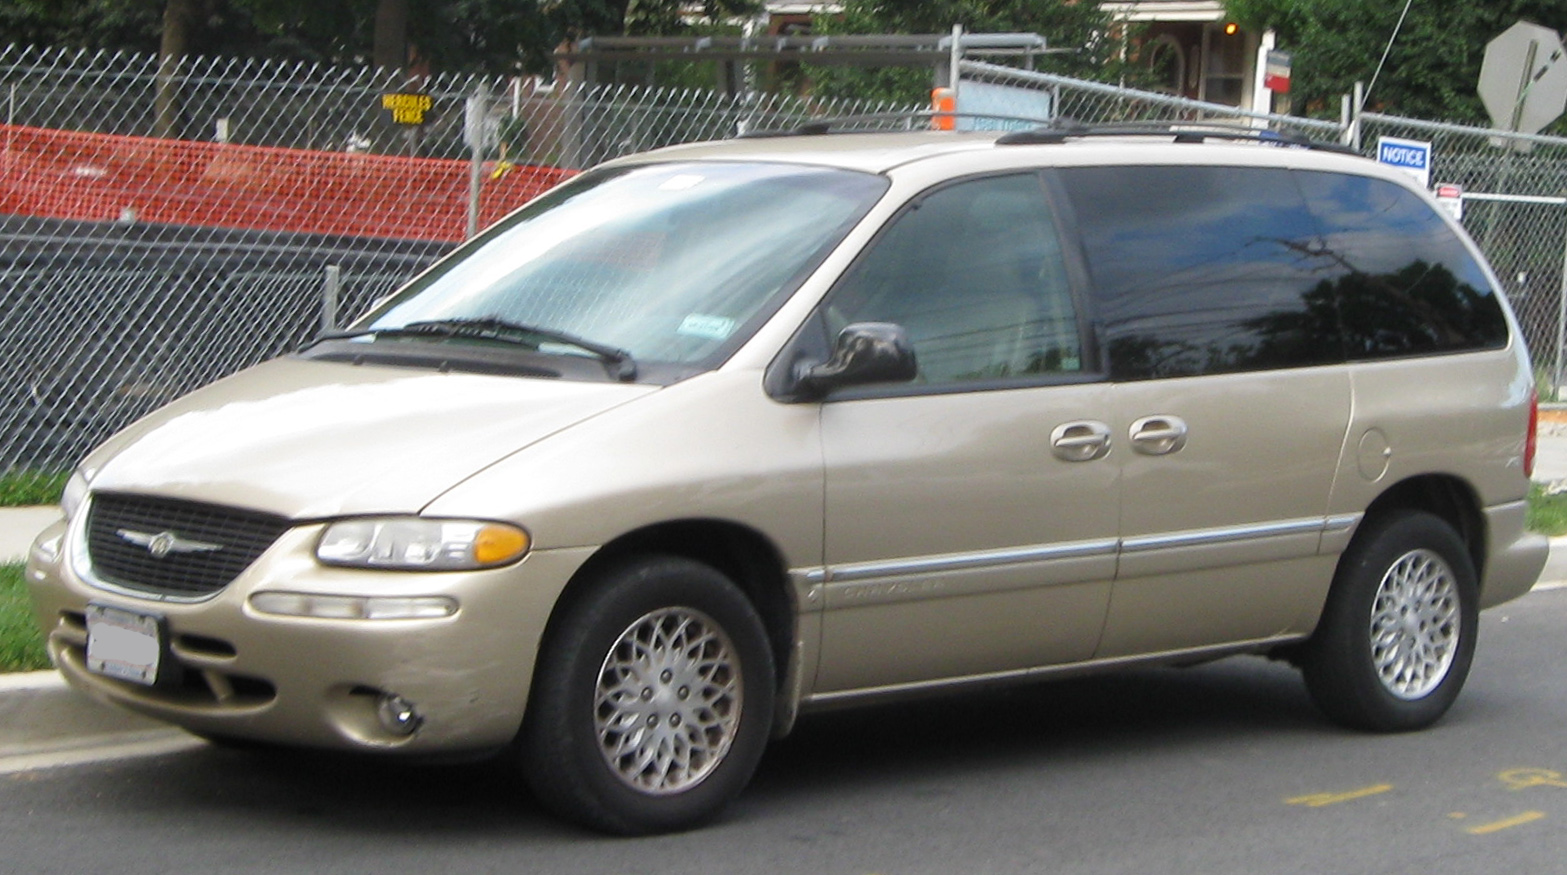 dodge caravan (_iii_) 1999 wallpaper